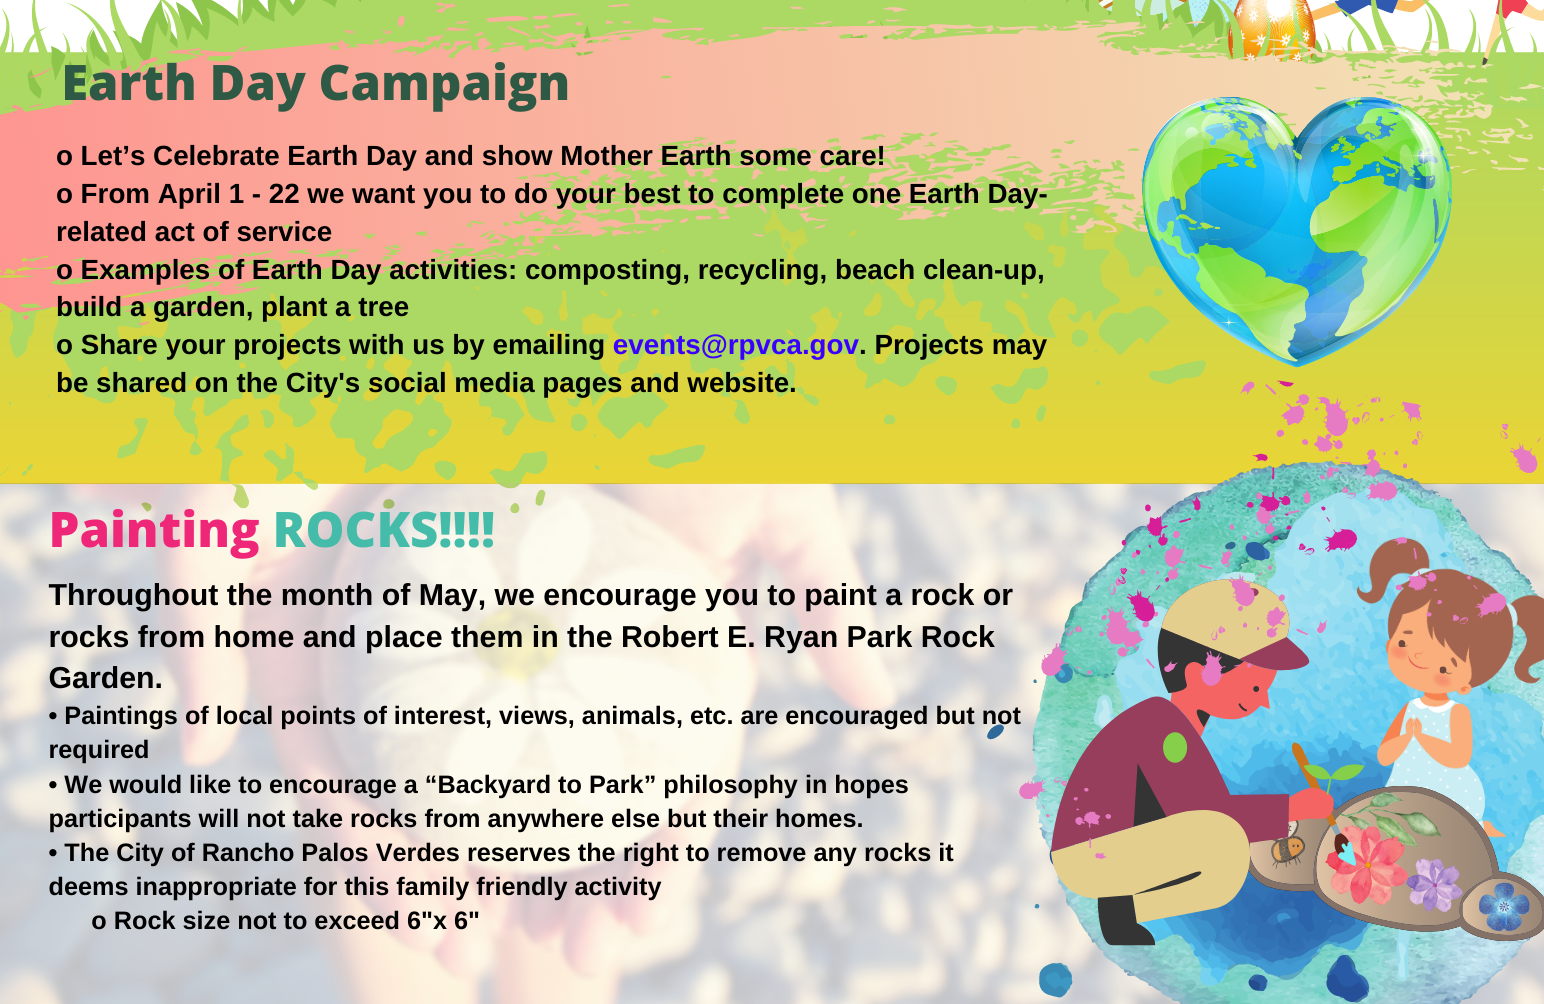 Earth Day and Painting Rocks